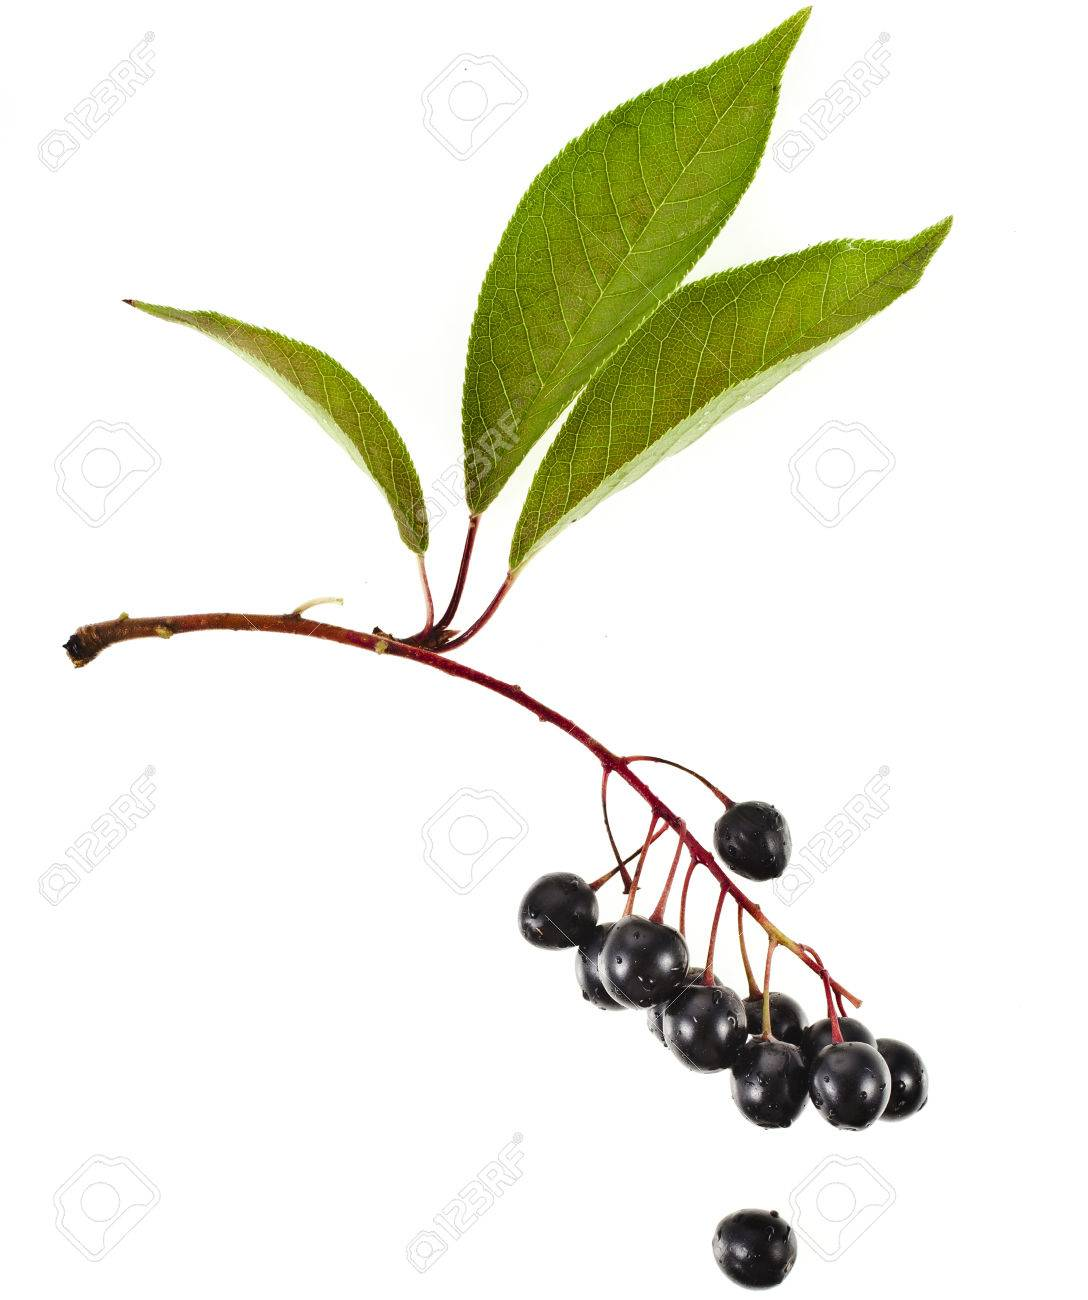 The Branch Of Bird Cherry Tree Prunus Padus Isolated On A White